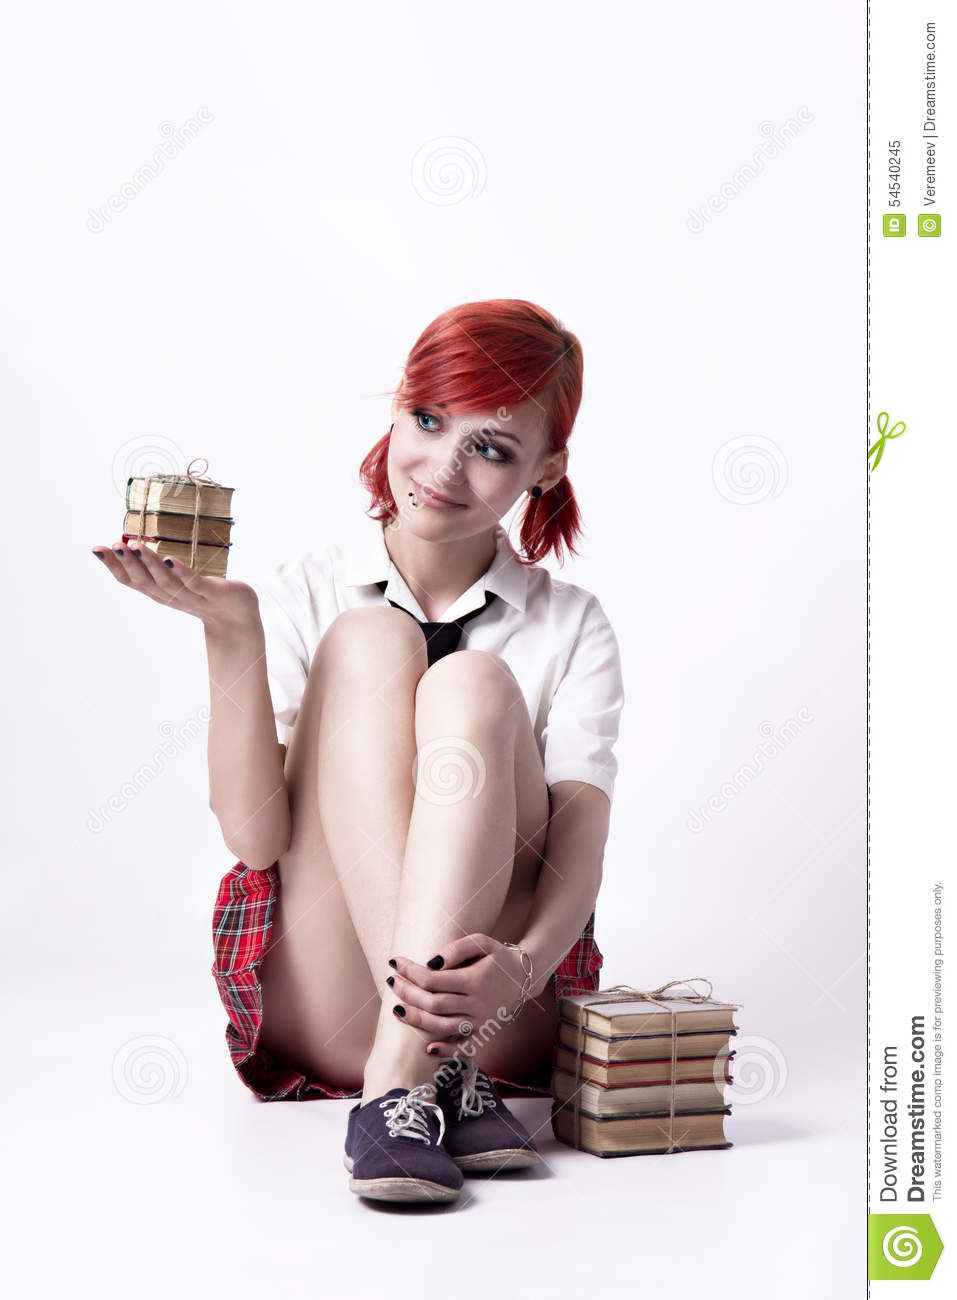 Beautiful girl in anime style with stacks of books